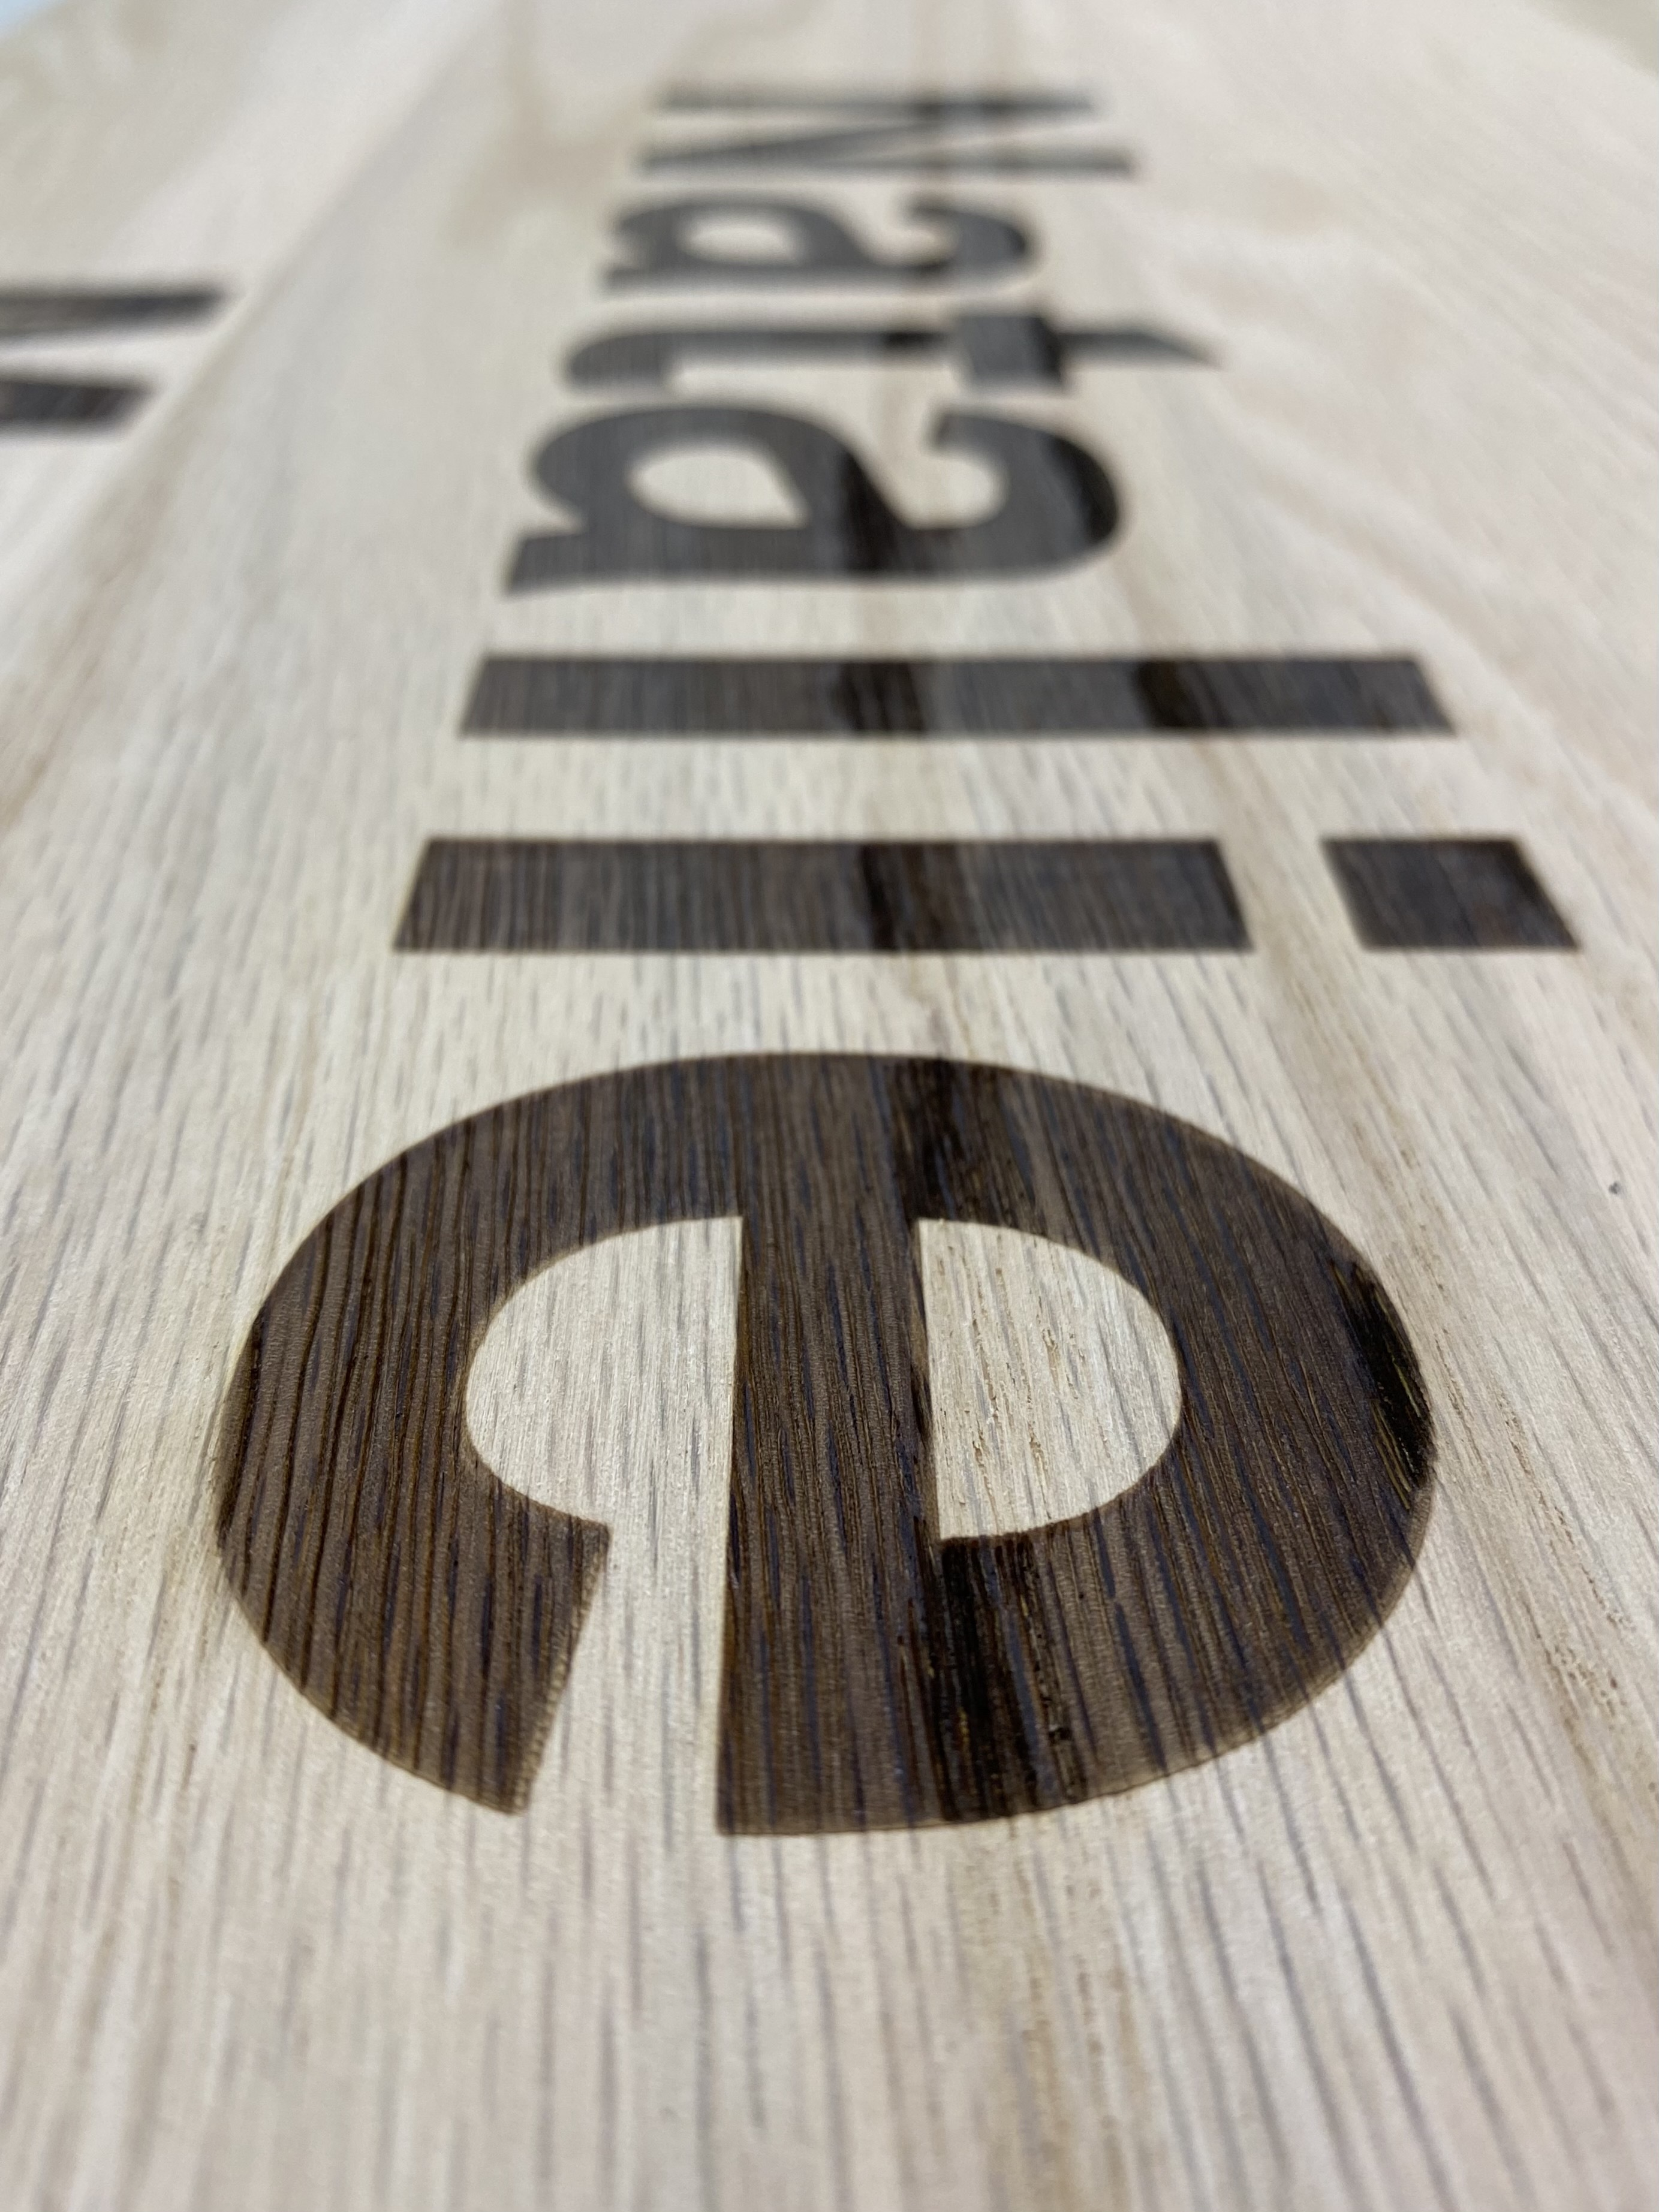 Red Oak Engraved with Personalized Names